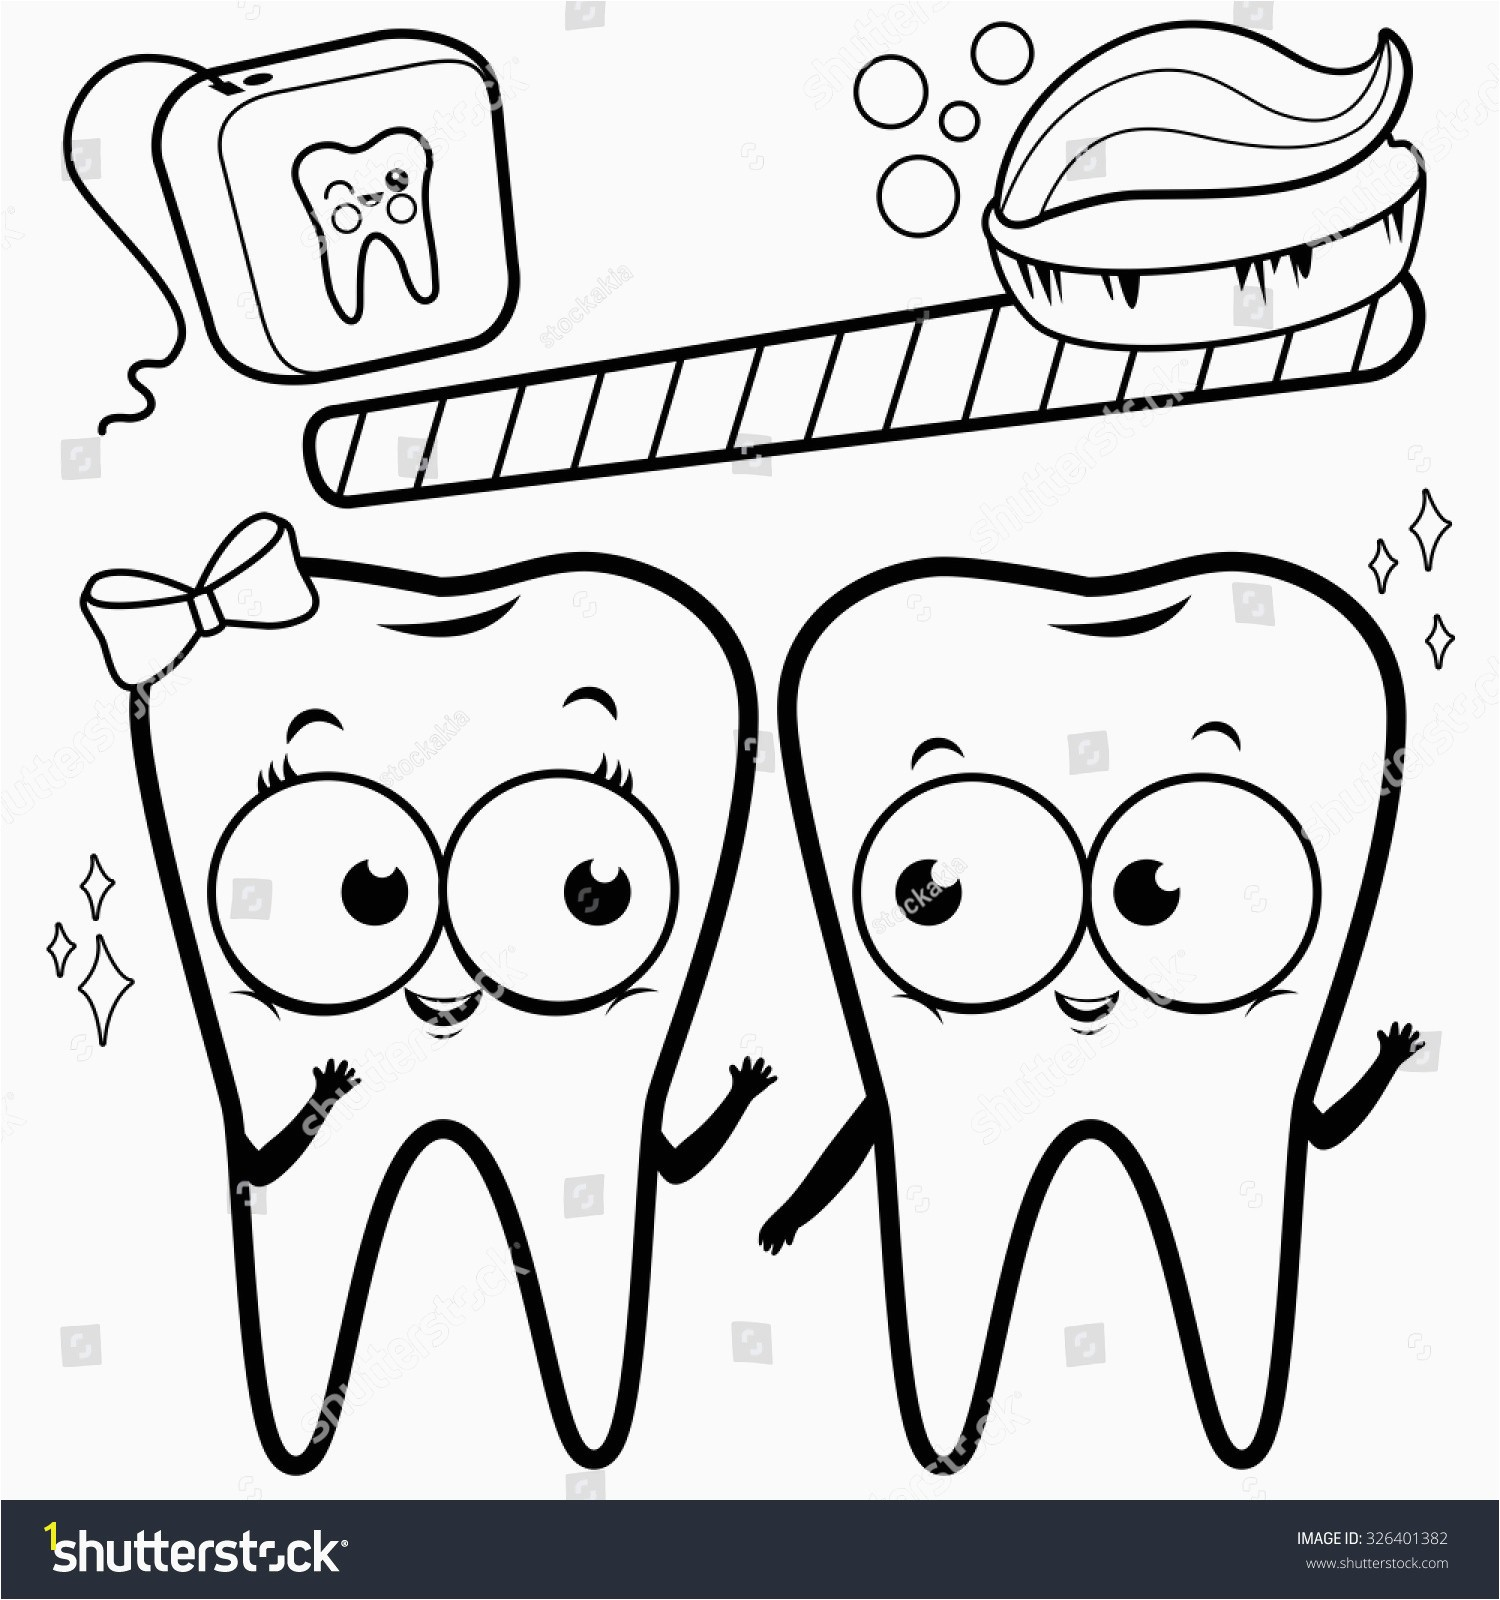 Tooth Coloring Pages Best Coloring Page Cartoon Teeth toothbrush Dental Stock Vector